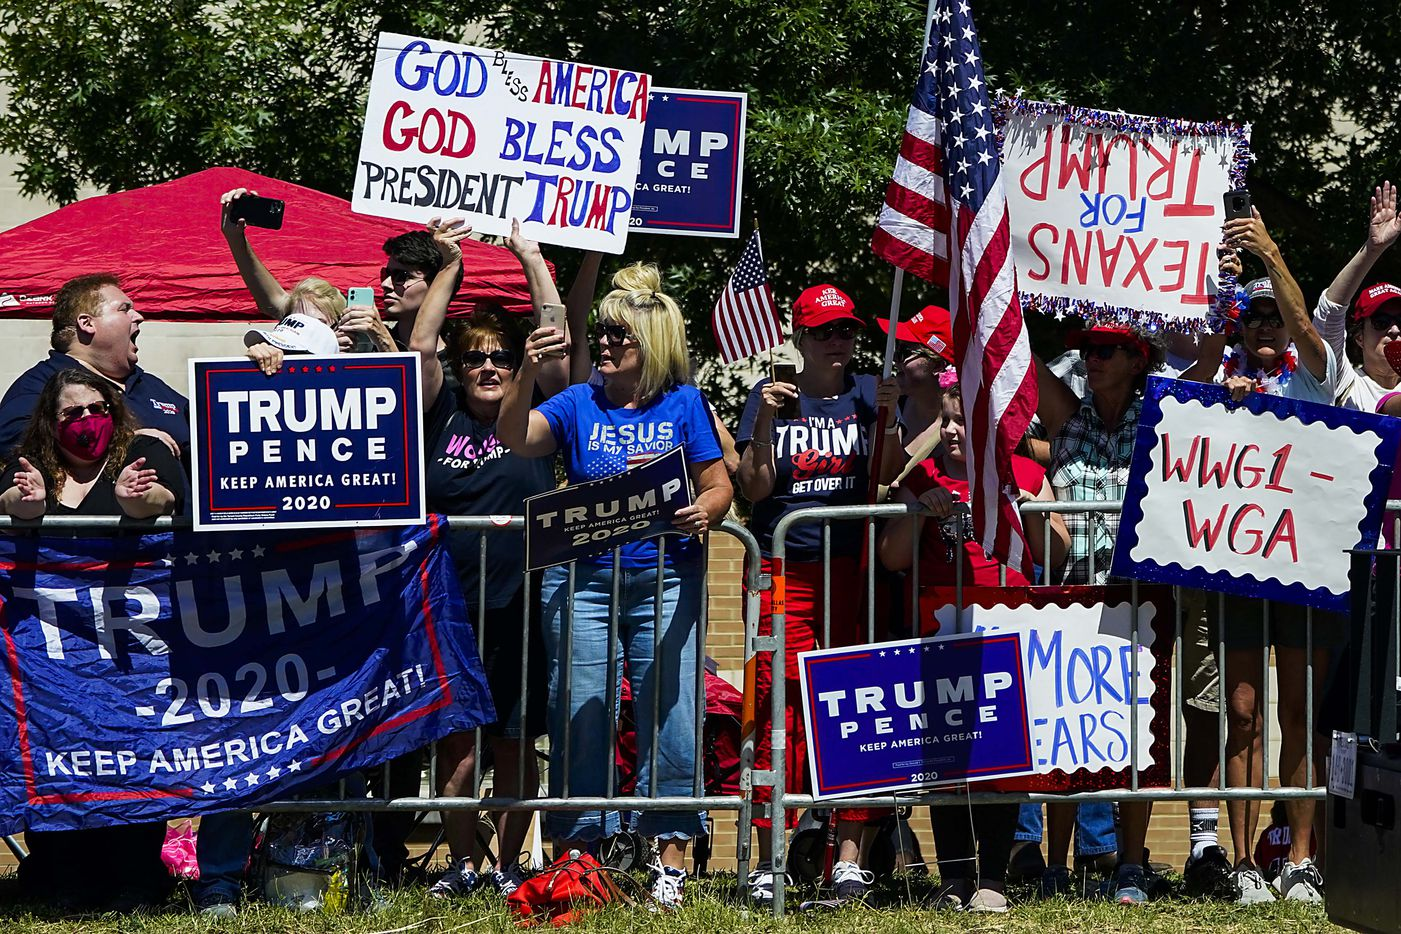 Supporters gather on the road near the church as President Donald TrumpÕs motorcade moves from Dallas Love Field Airport en route to Gateway Church Dallas Campus for a roundtable conversation about race relations and policing  on Thursday, June 11, 2020, in Dallas. (Smiley N. Pool/The Dallas Morning News)